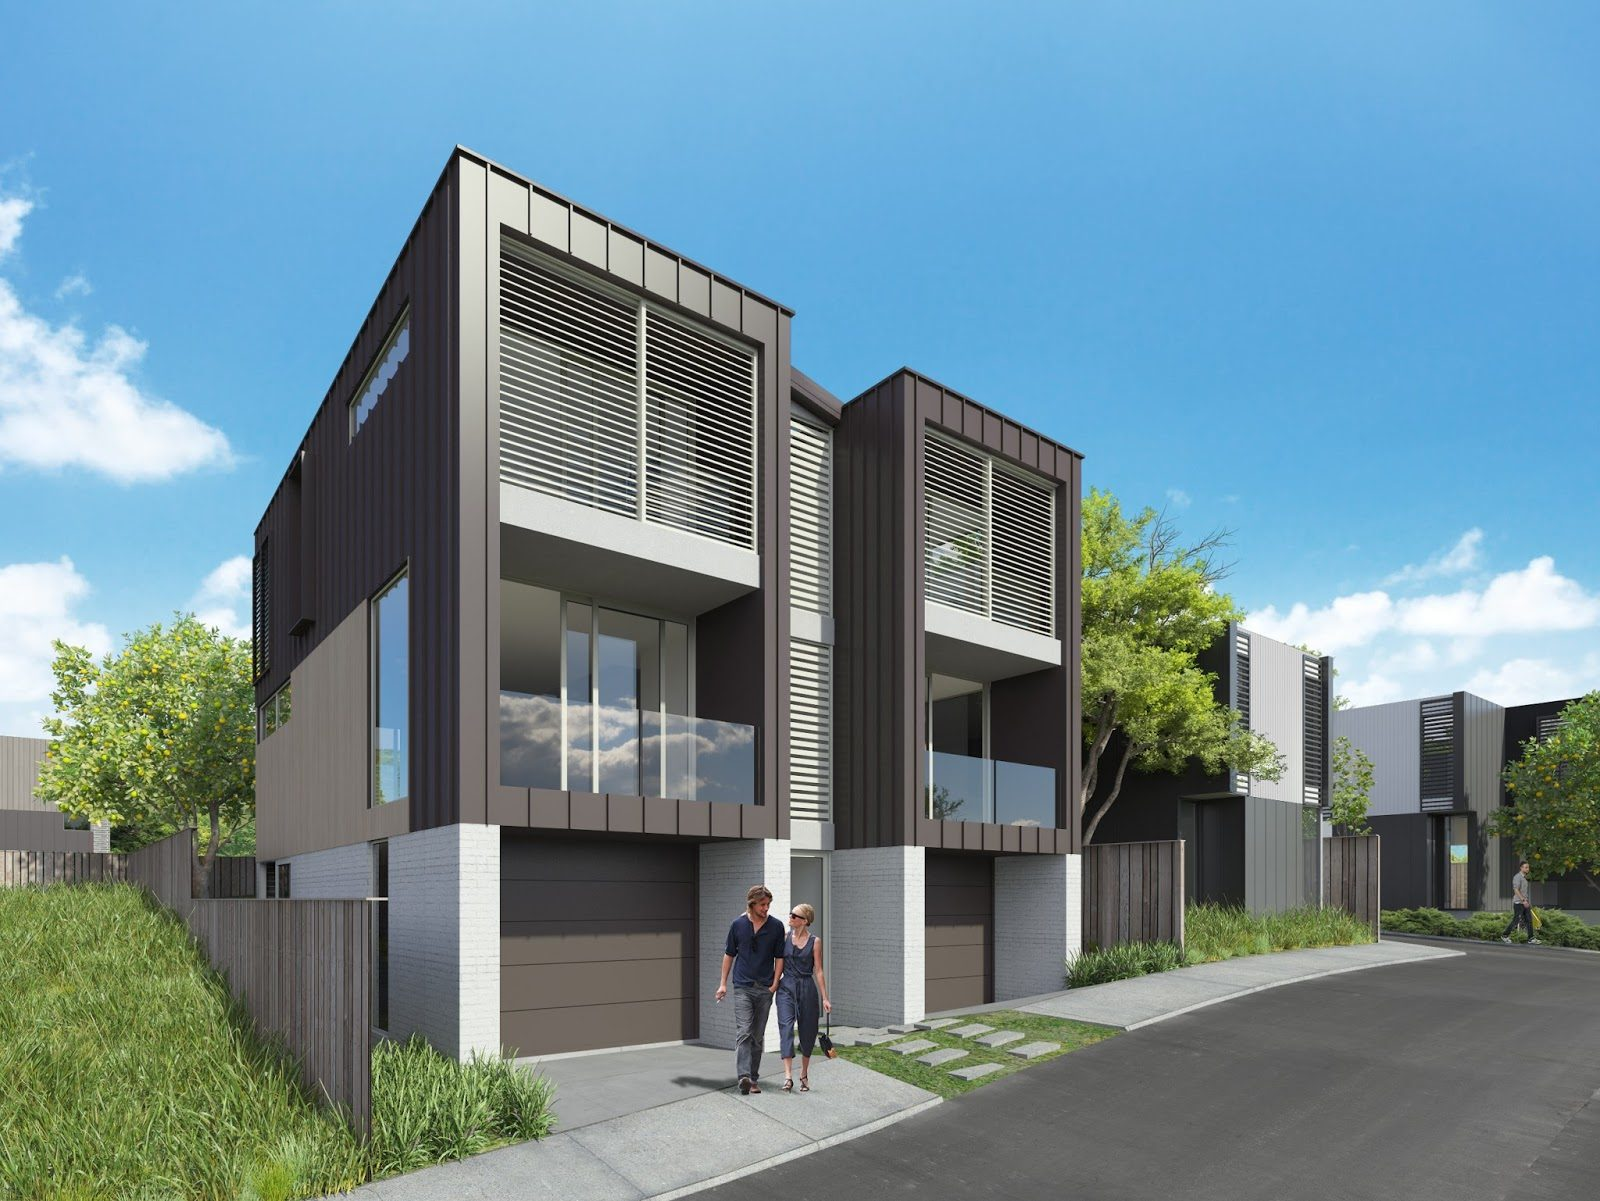 House Builders Reviews Nz on japan houses, co houses, mc houses, ky houses, no houses, hk houses, tp houses, ag houses, new zealand houses, sm houses,